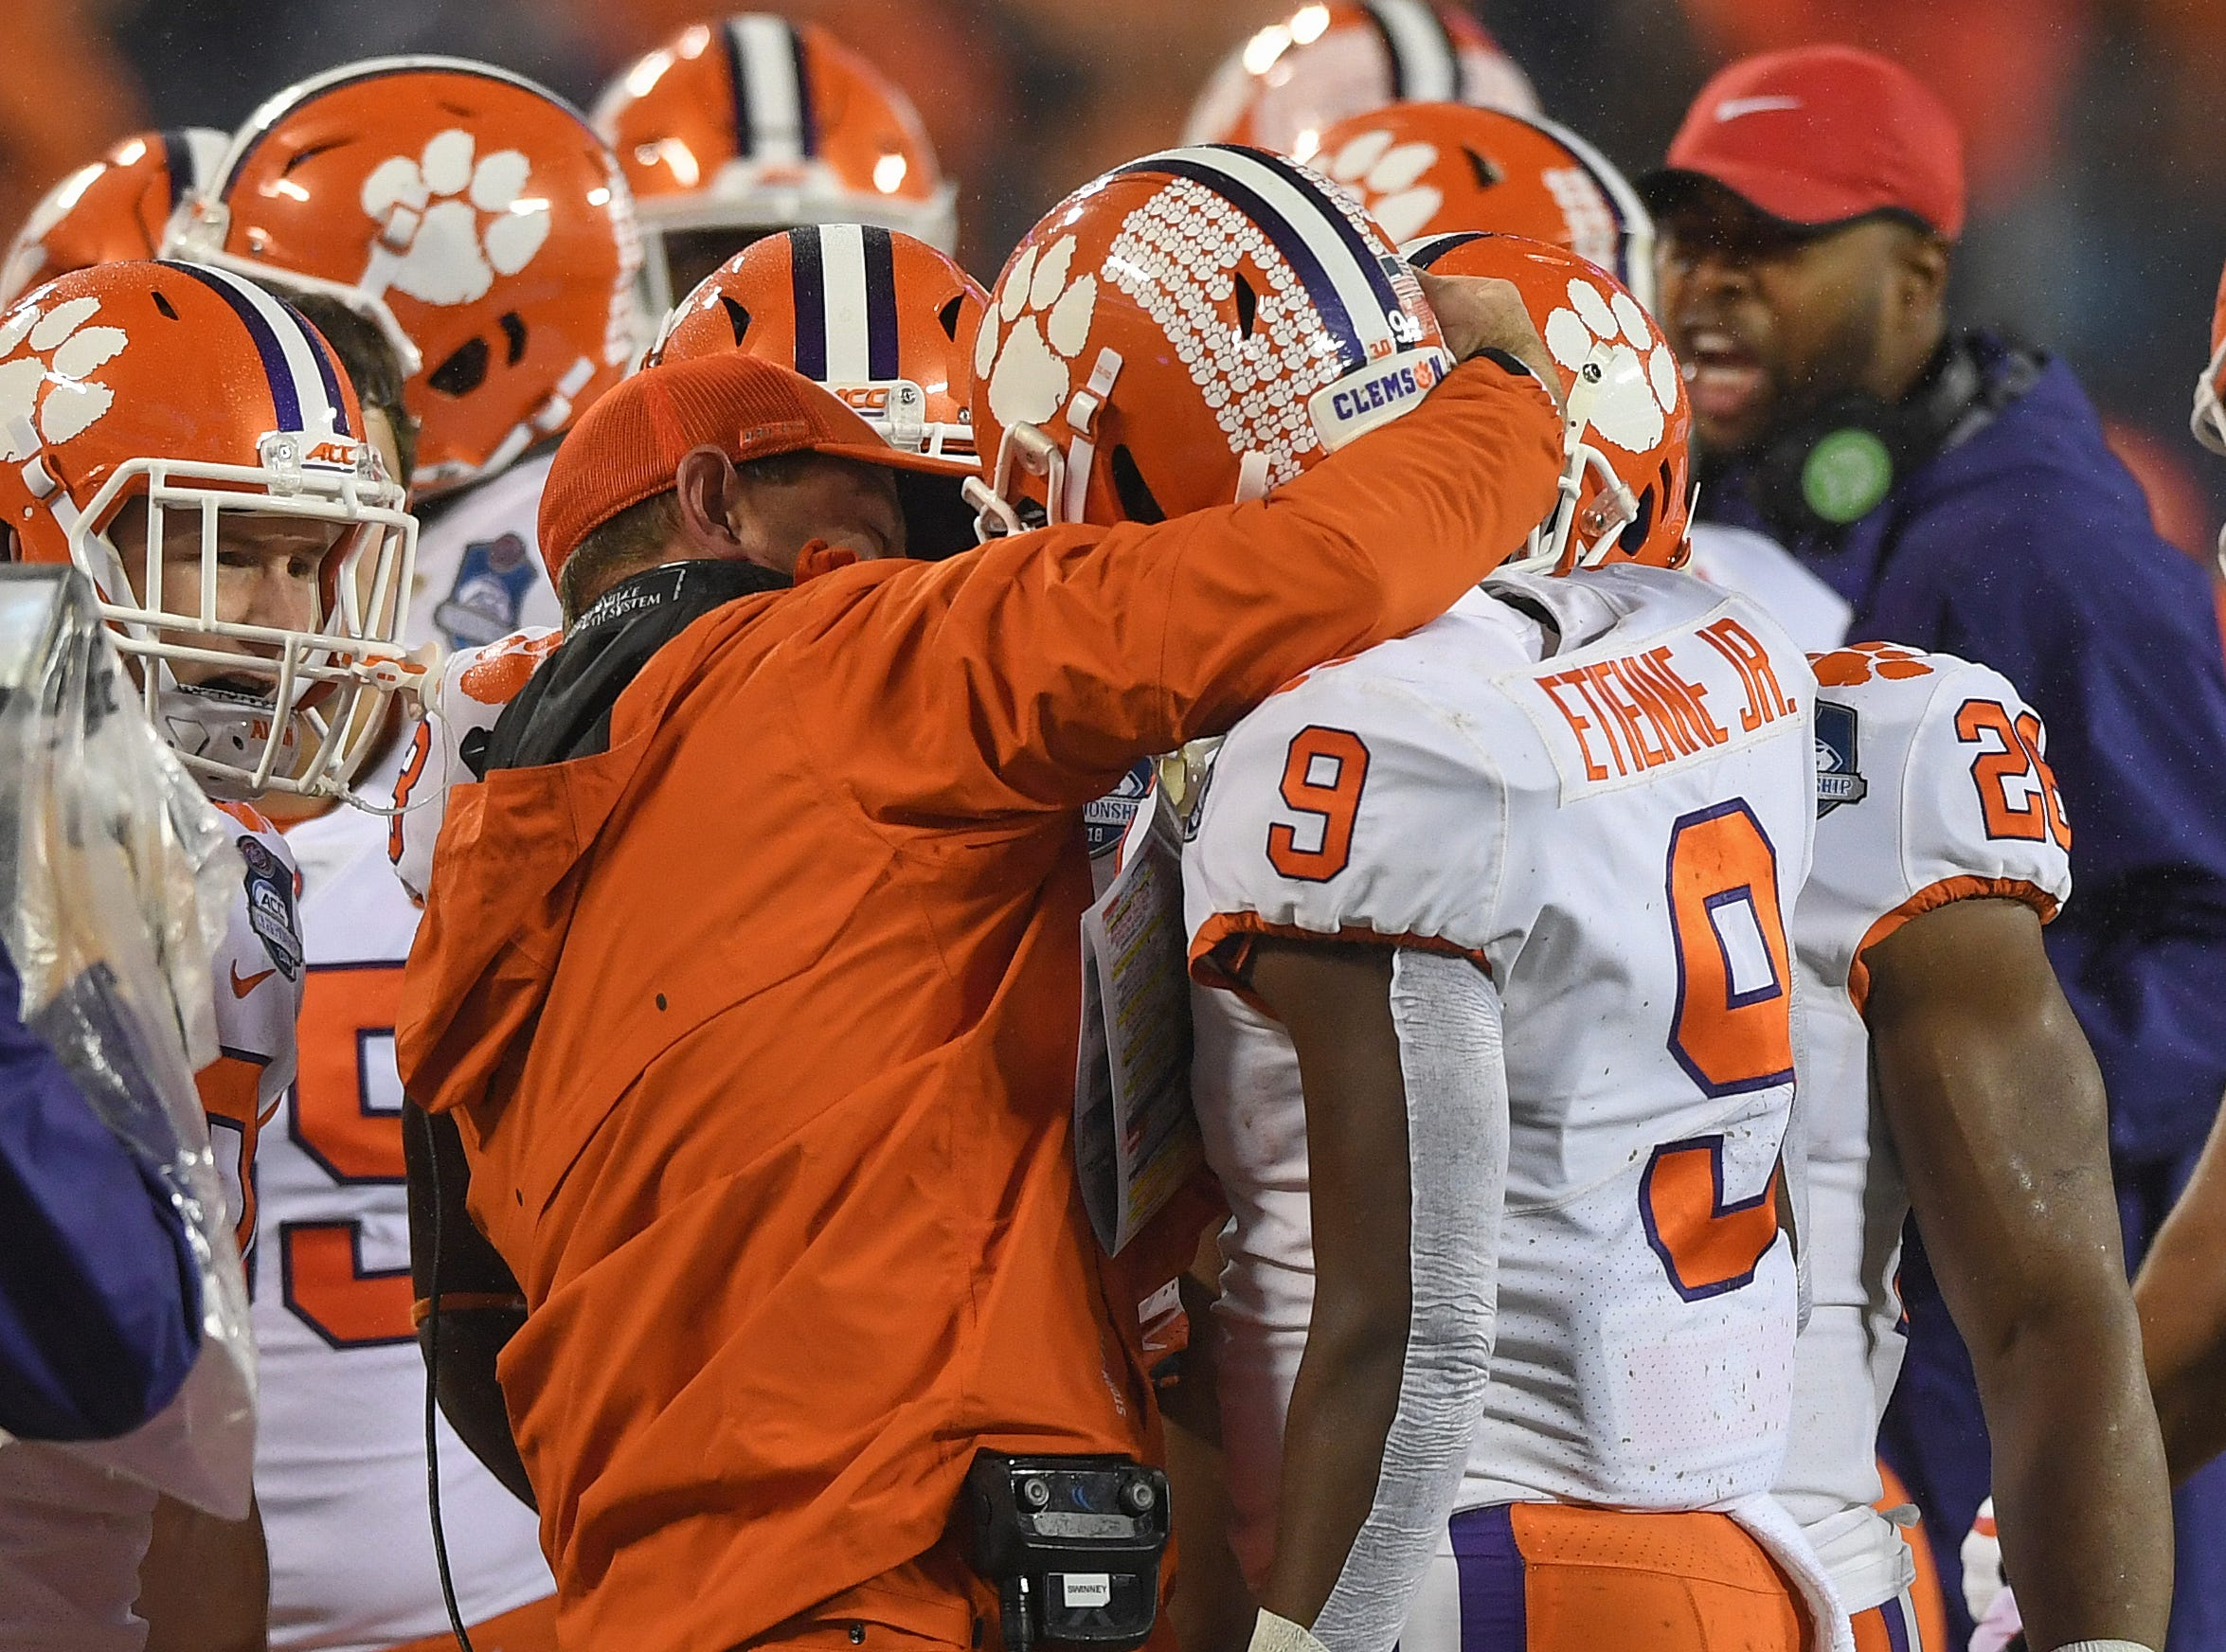 Clemson head coach Dabo Swinney congratulates running back Travis Etienne (9) after he raced 75 yards to score against Pittsburgh on the Tigers first play from scrimmage during the 1st quarter of the Dr. Pepper ACC Championship at Bank of America Stadium in Charlotte, N.C. Saturday, December 1, 2018.